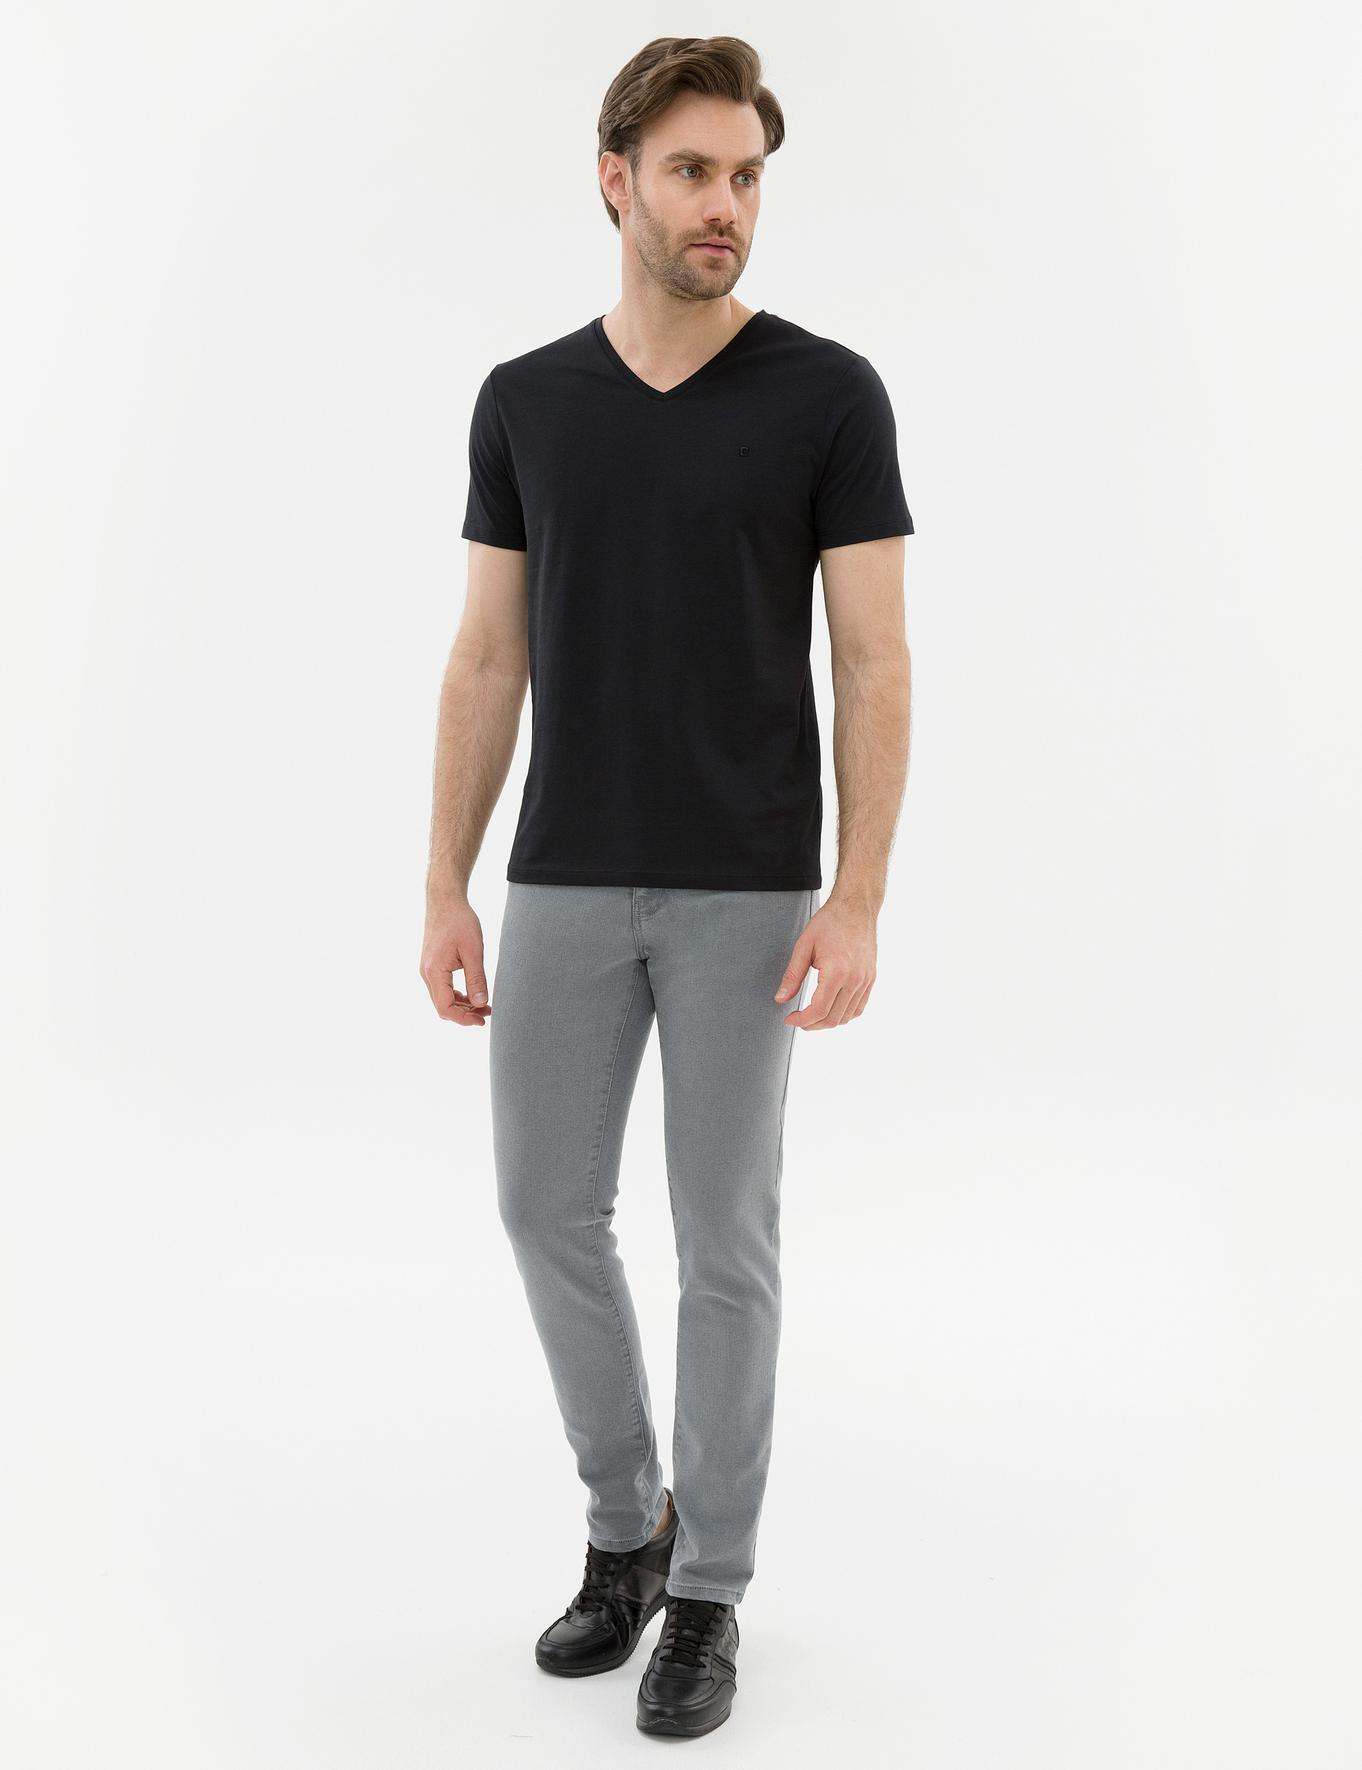 Siyah Slim Fit V Yaka T-Shirt